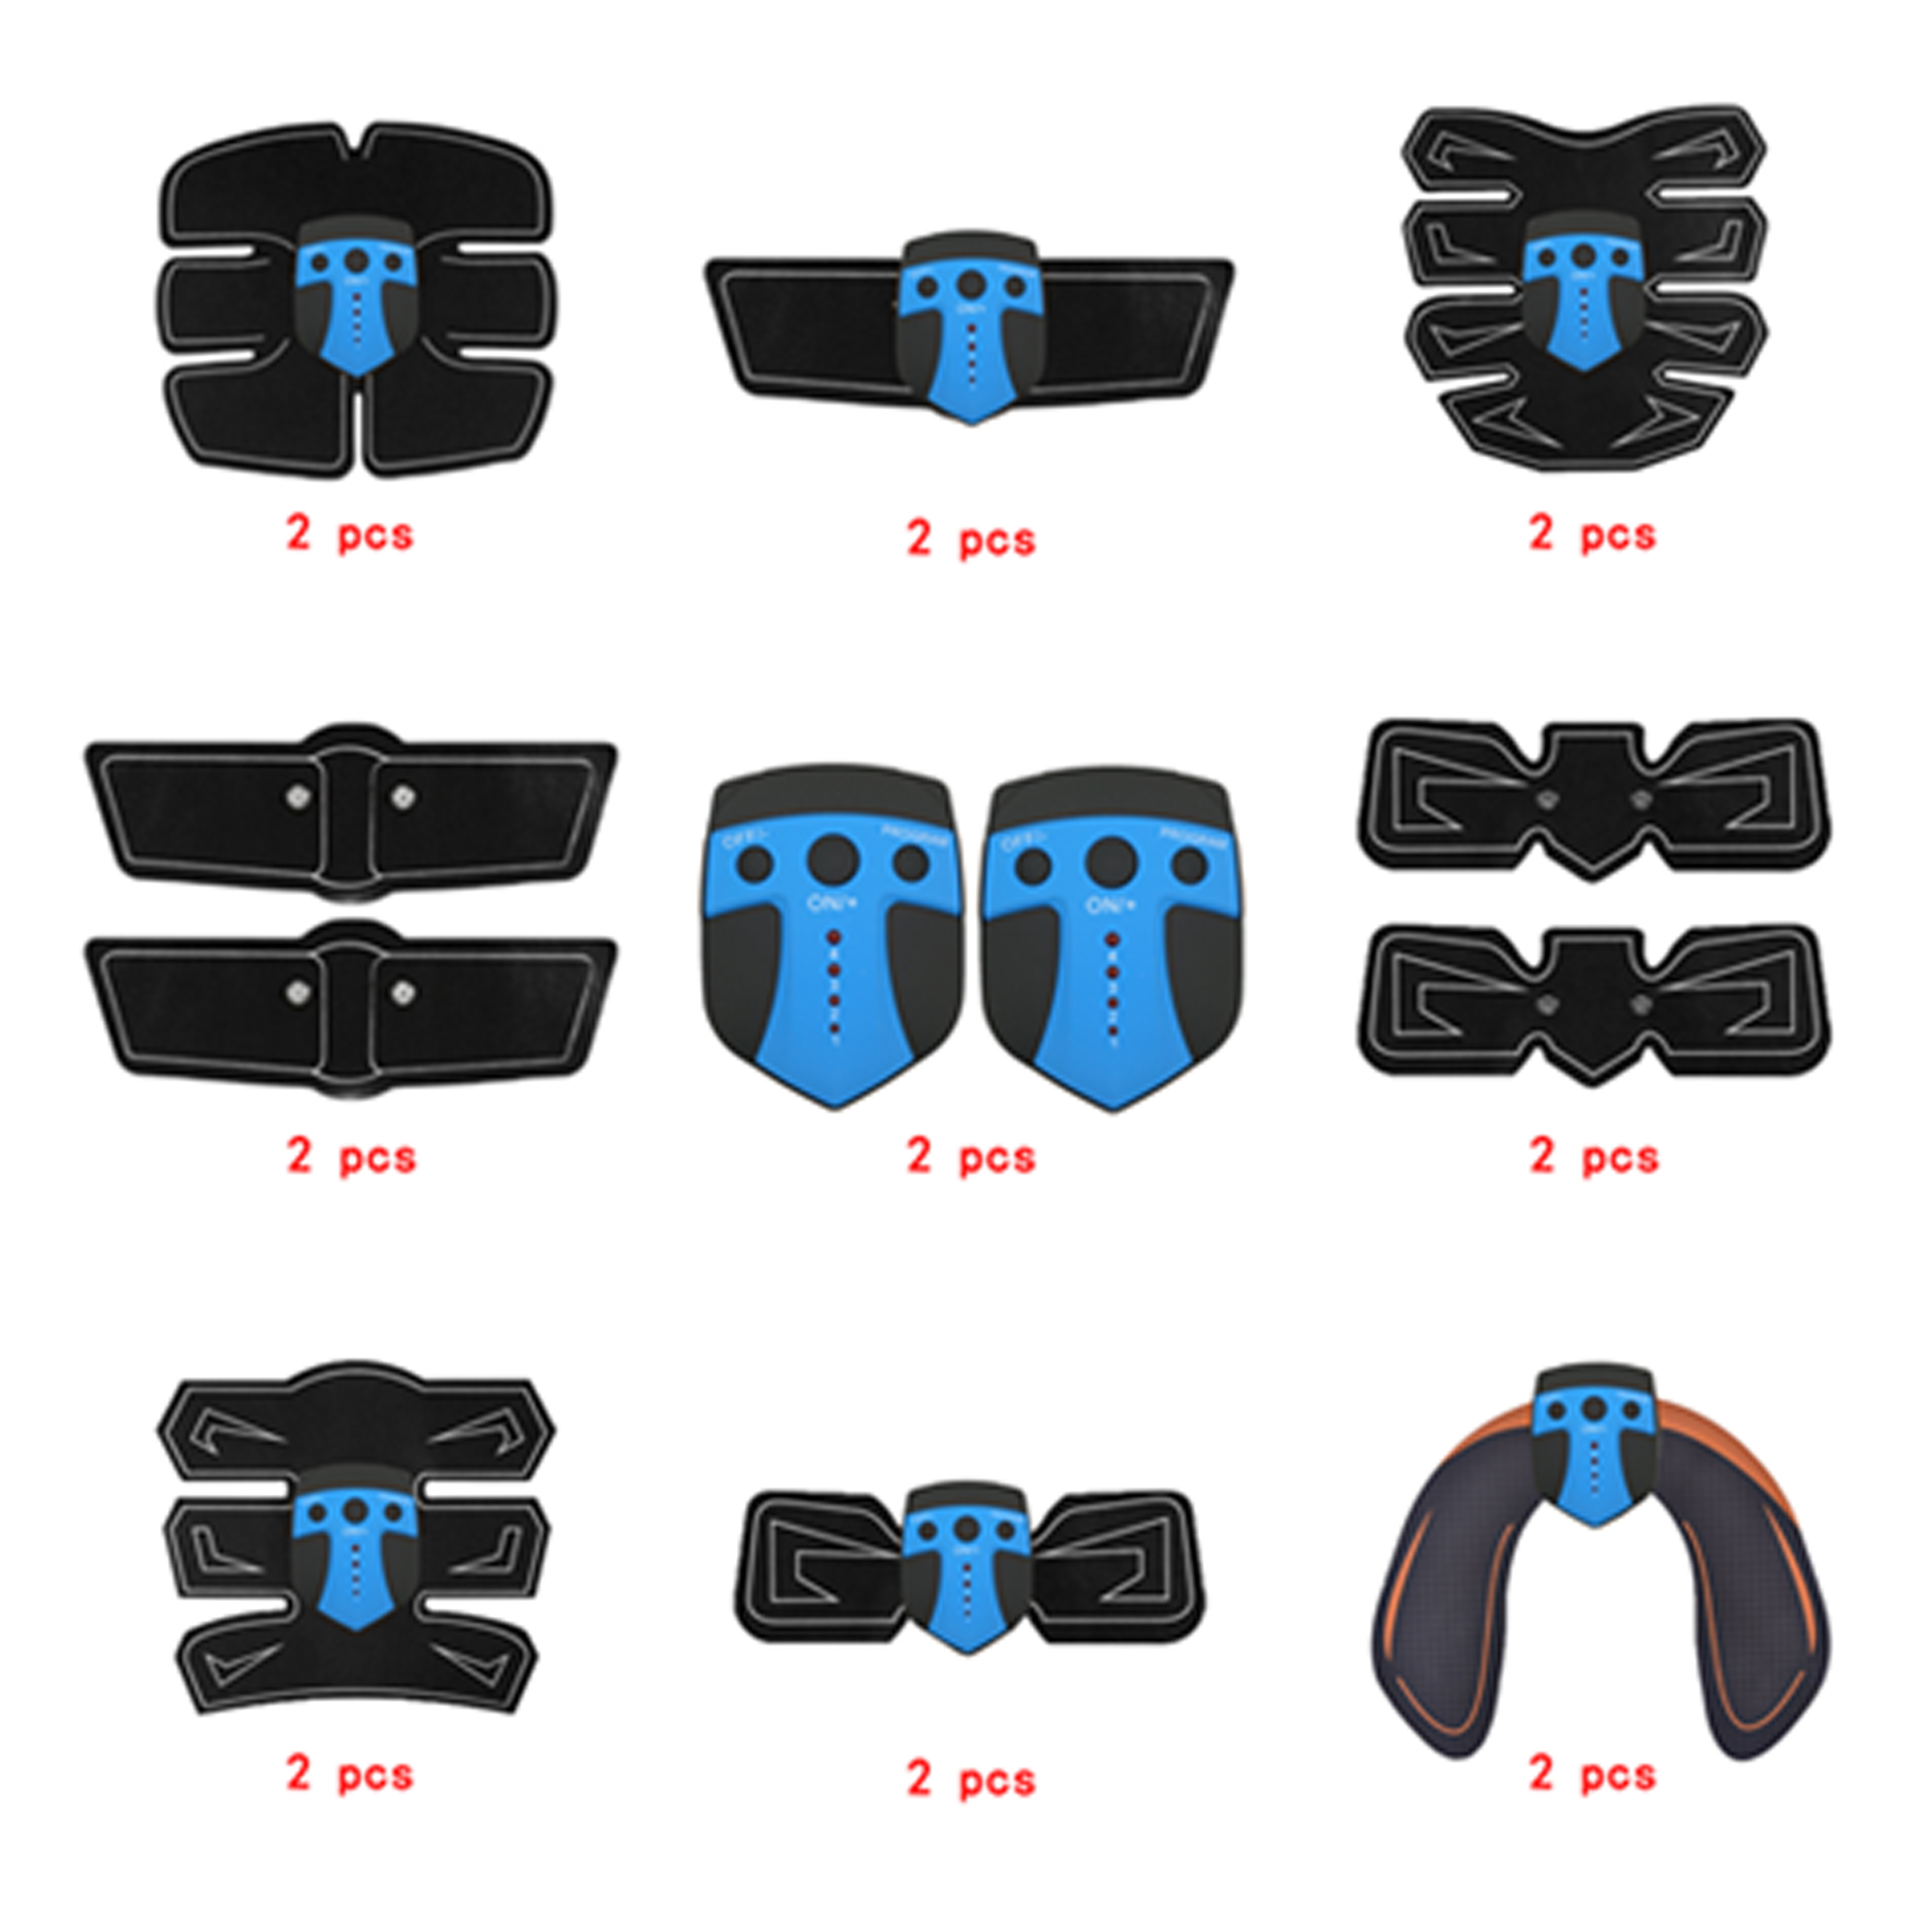 2pc Replacement Part Muscle Stimulator EMS Figure Slimming Machine Abdominal Muscle Tens Exercise Slim Belt Rechargeable Blue in Slimming Product from Beauty Health